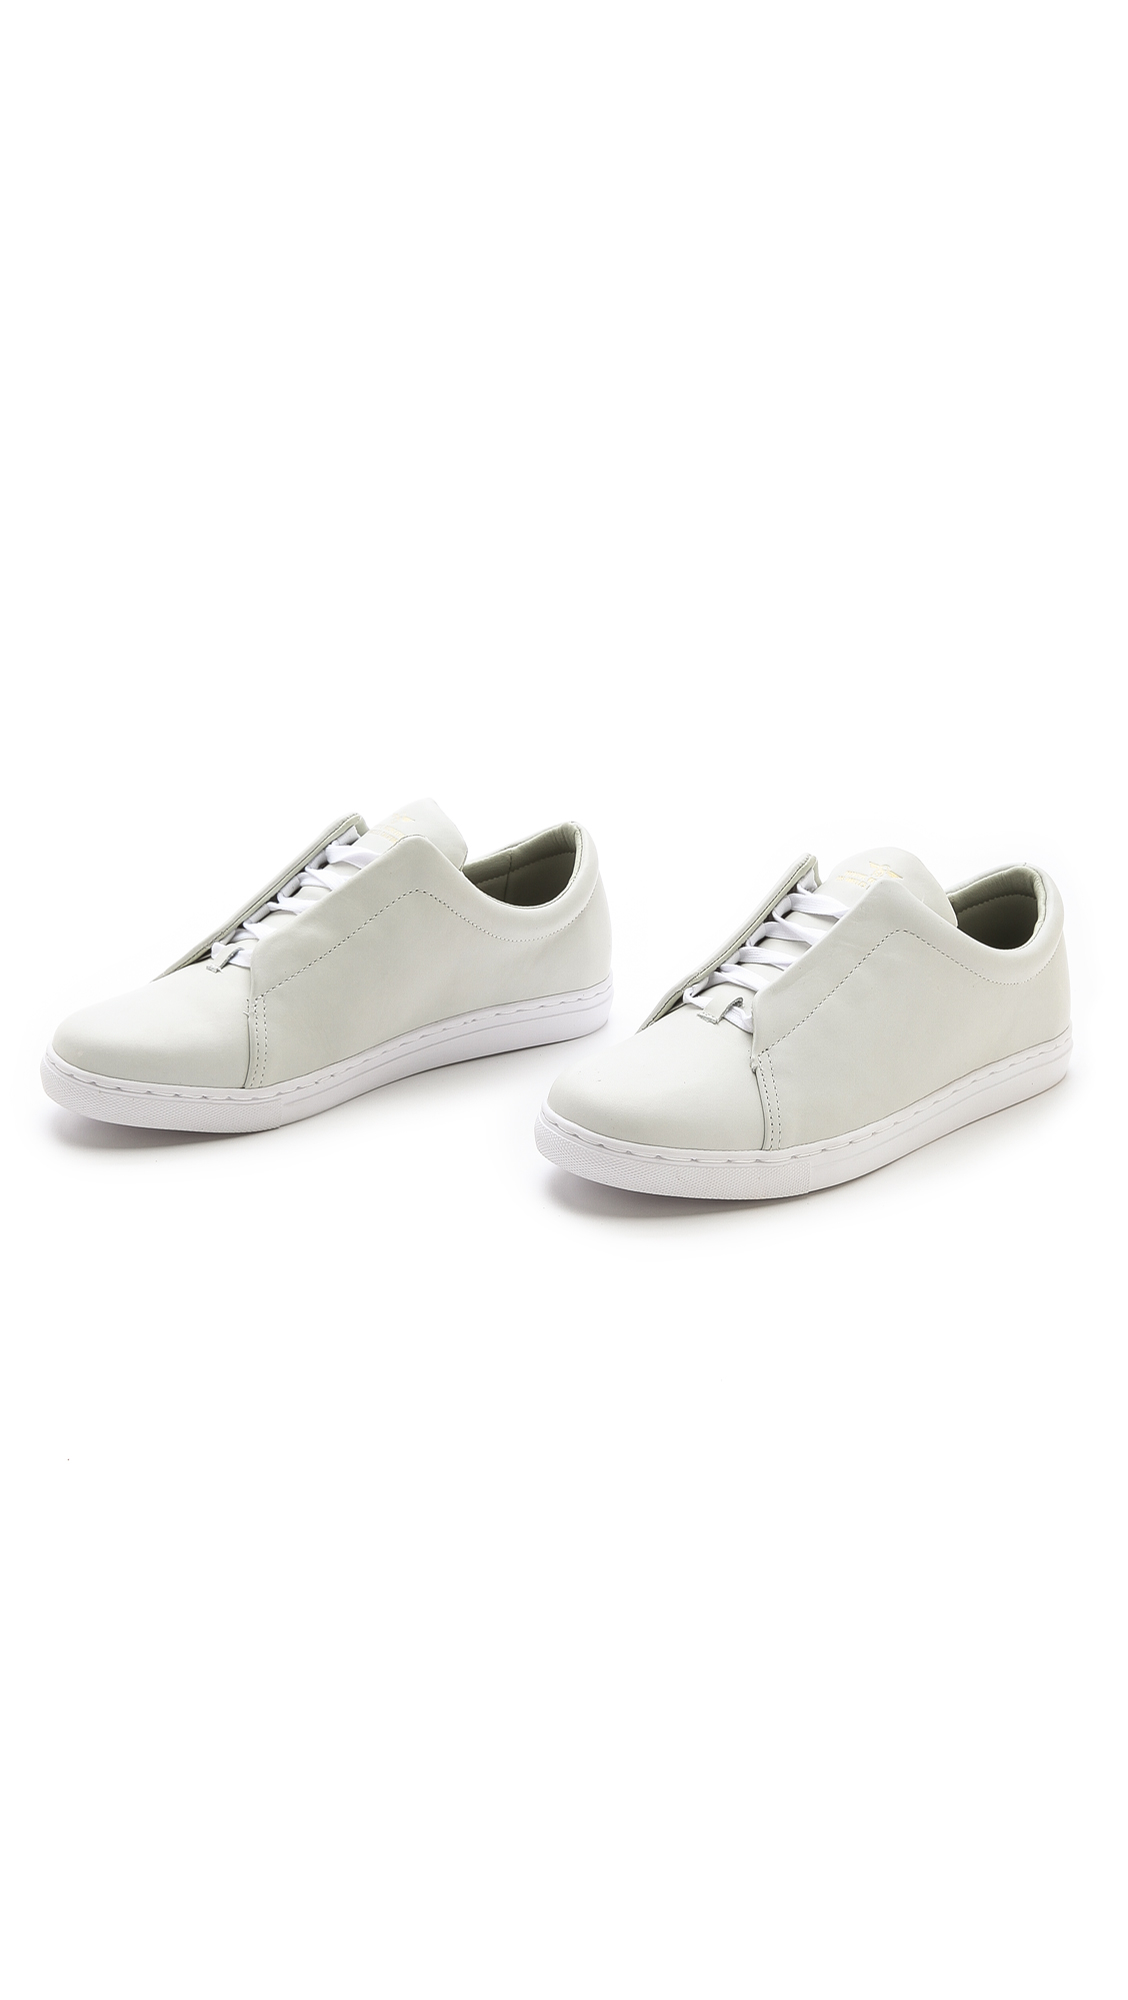 creative recreation turino sneakers in white for lyst